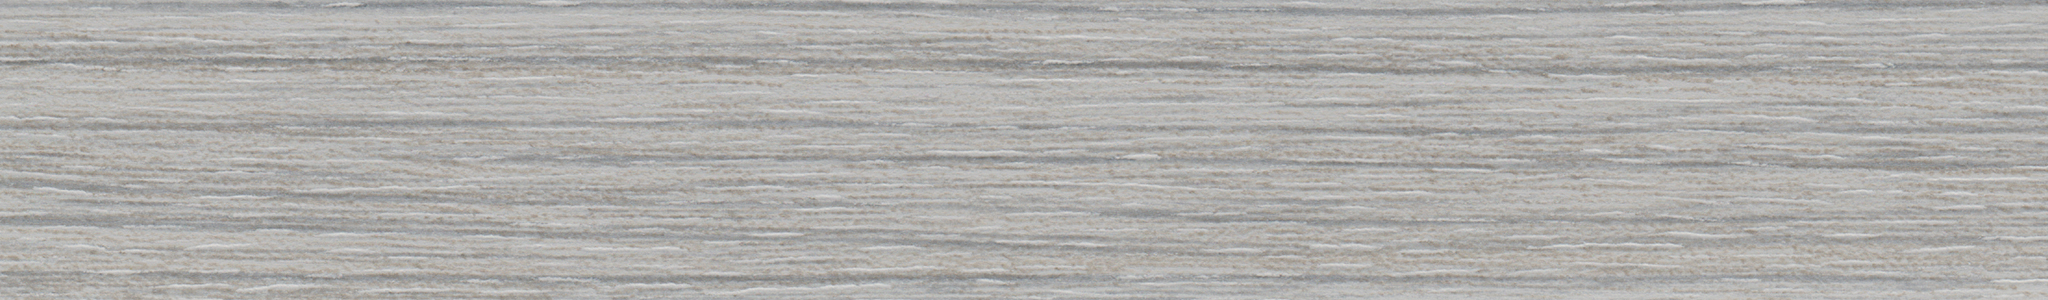 HD 26089 Chant ABS Gris Nordique Graine